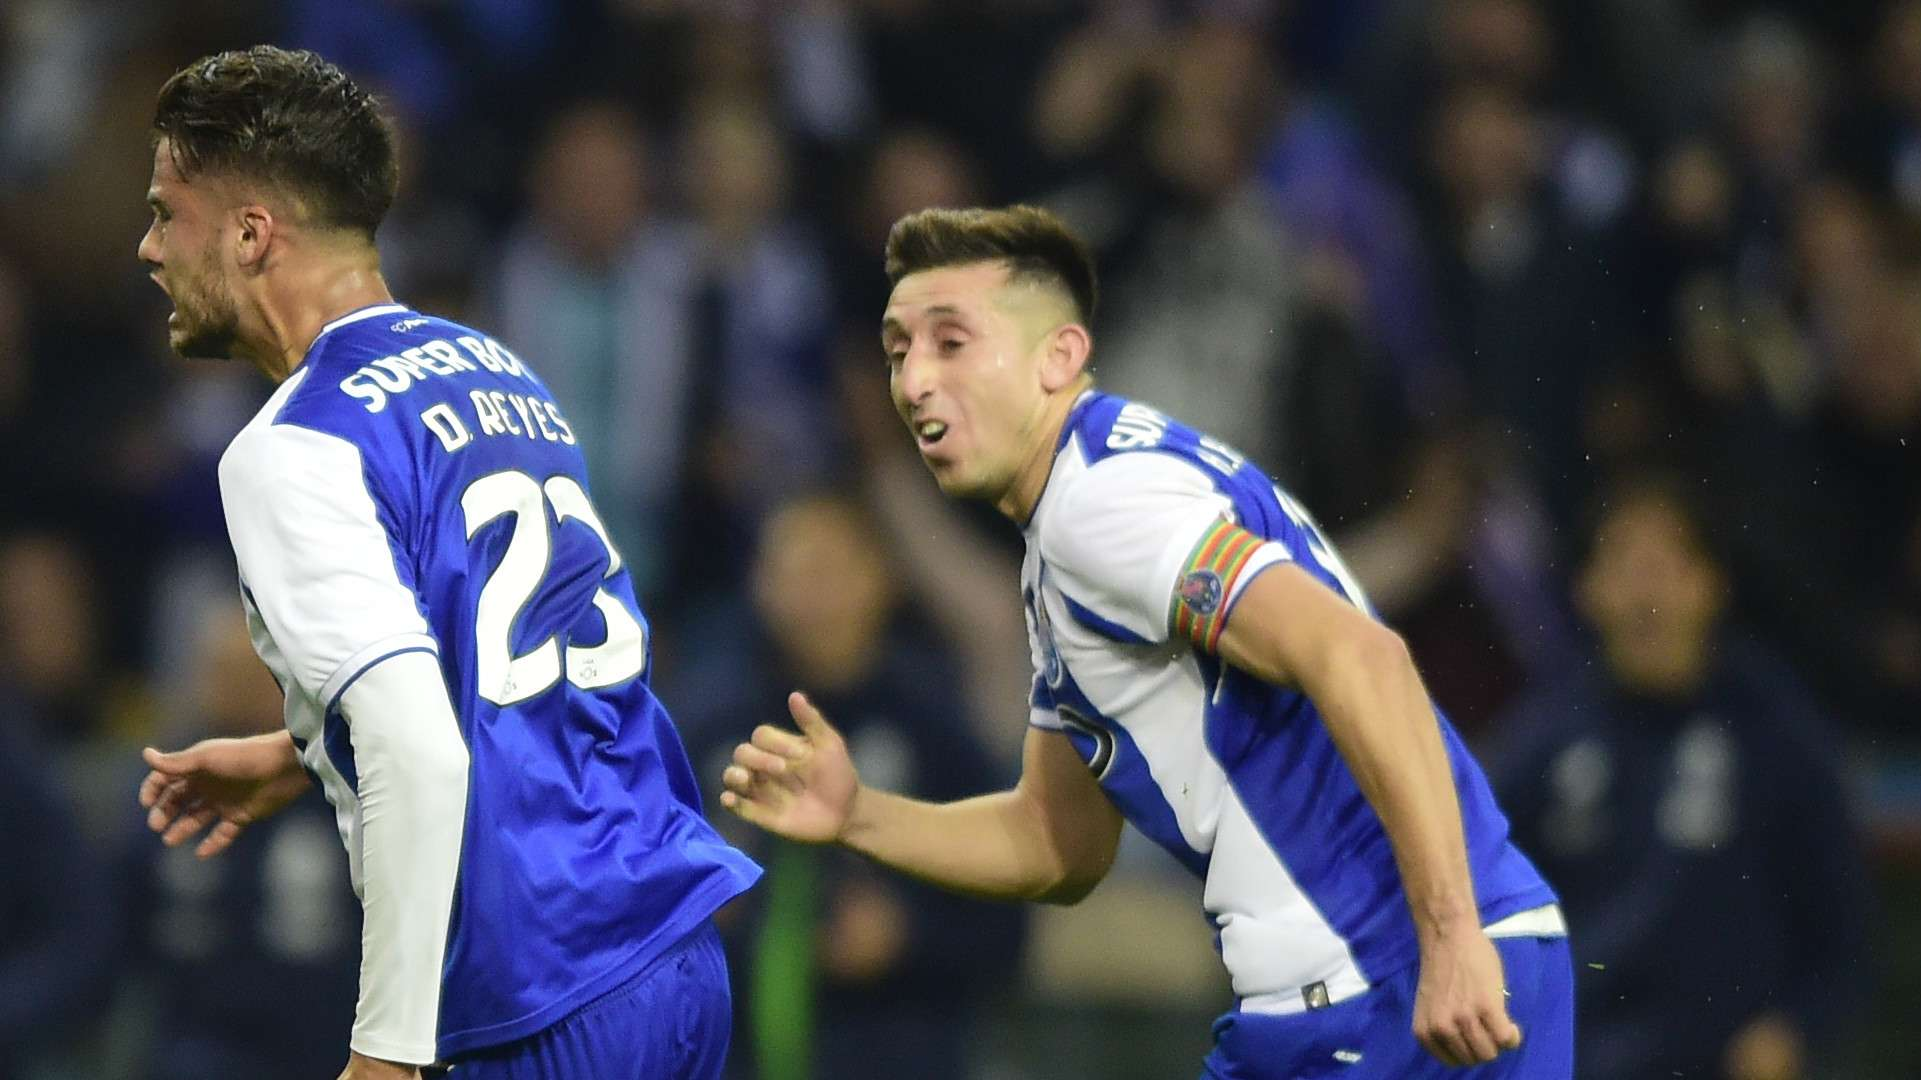 fd59ef9524b45 Porto vs. Liverpool: PorTri alive and well as Mexico national team players  help Porto establish foothold in Champions League | Goal.com